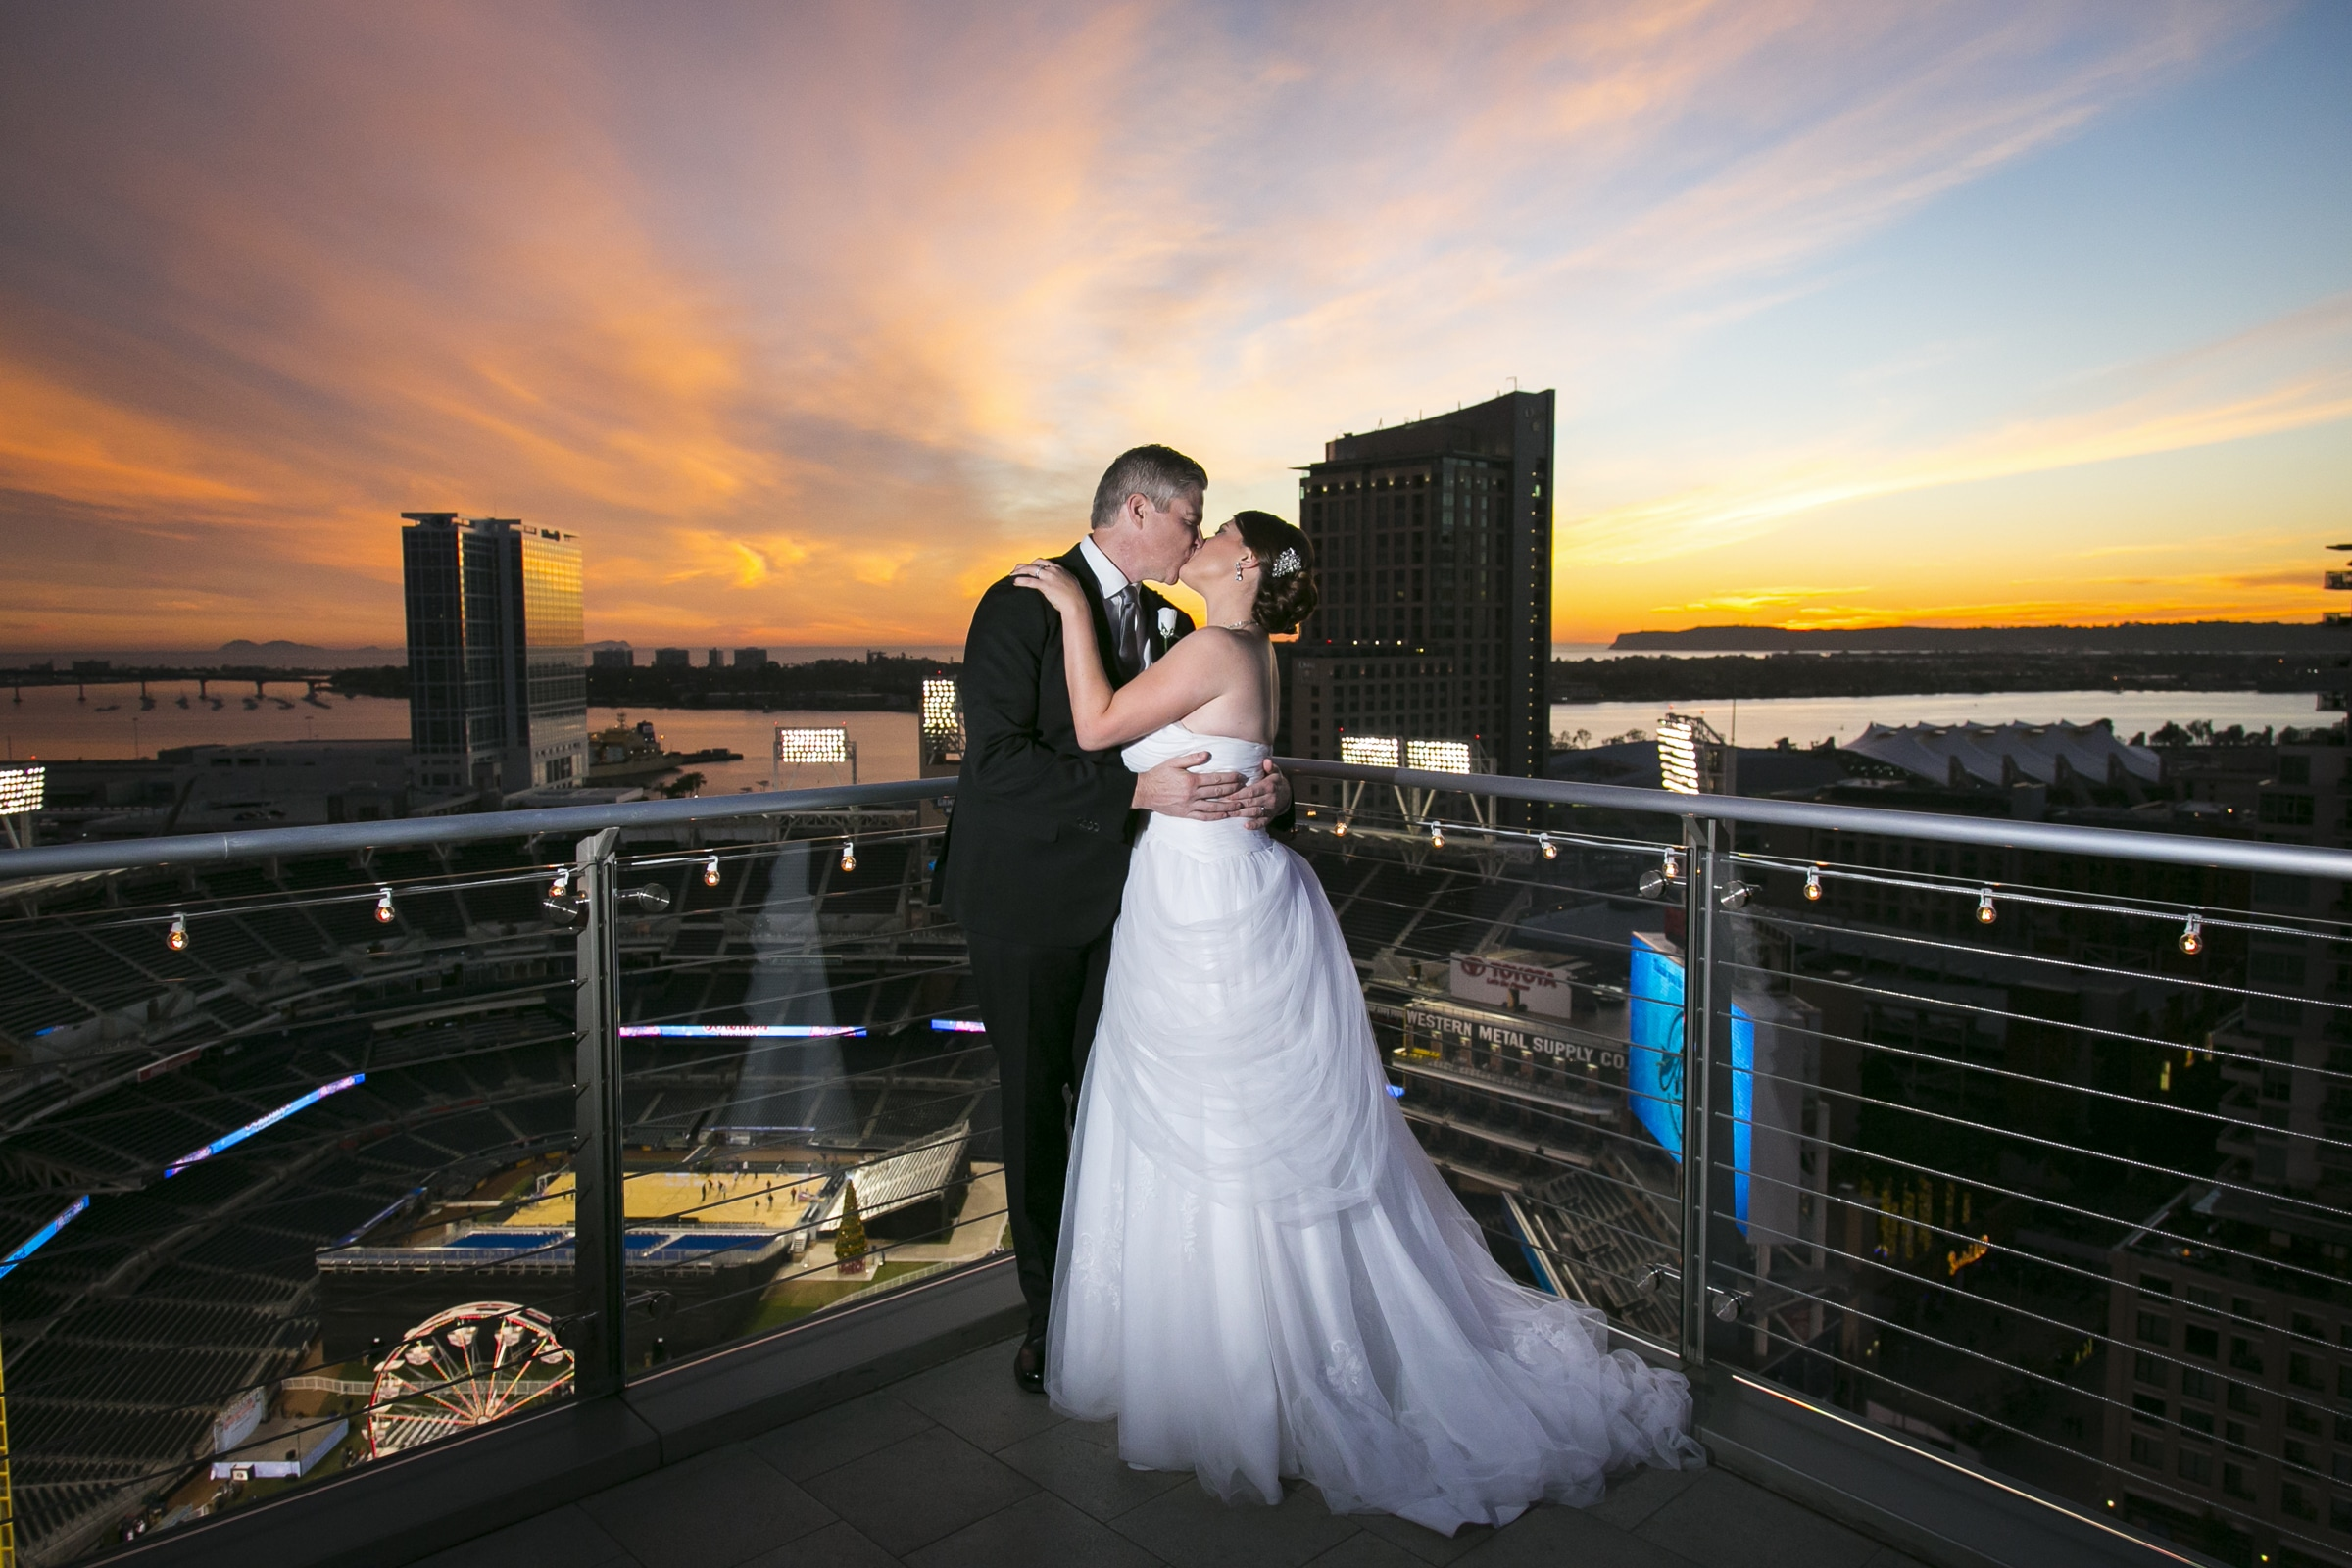 ultimate-sky-box-wedding-3